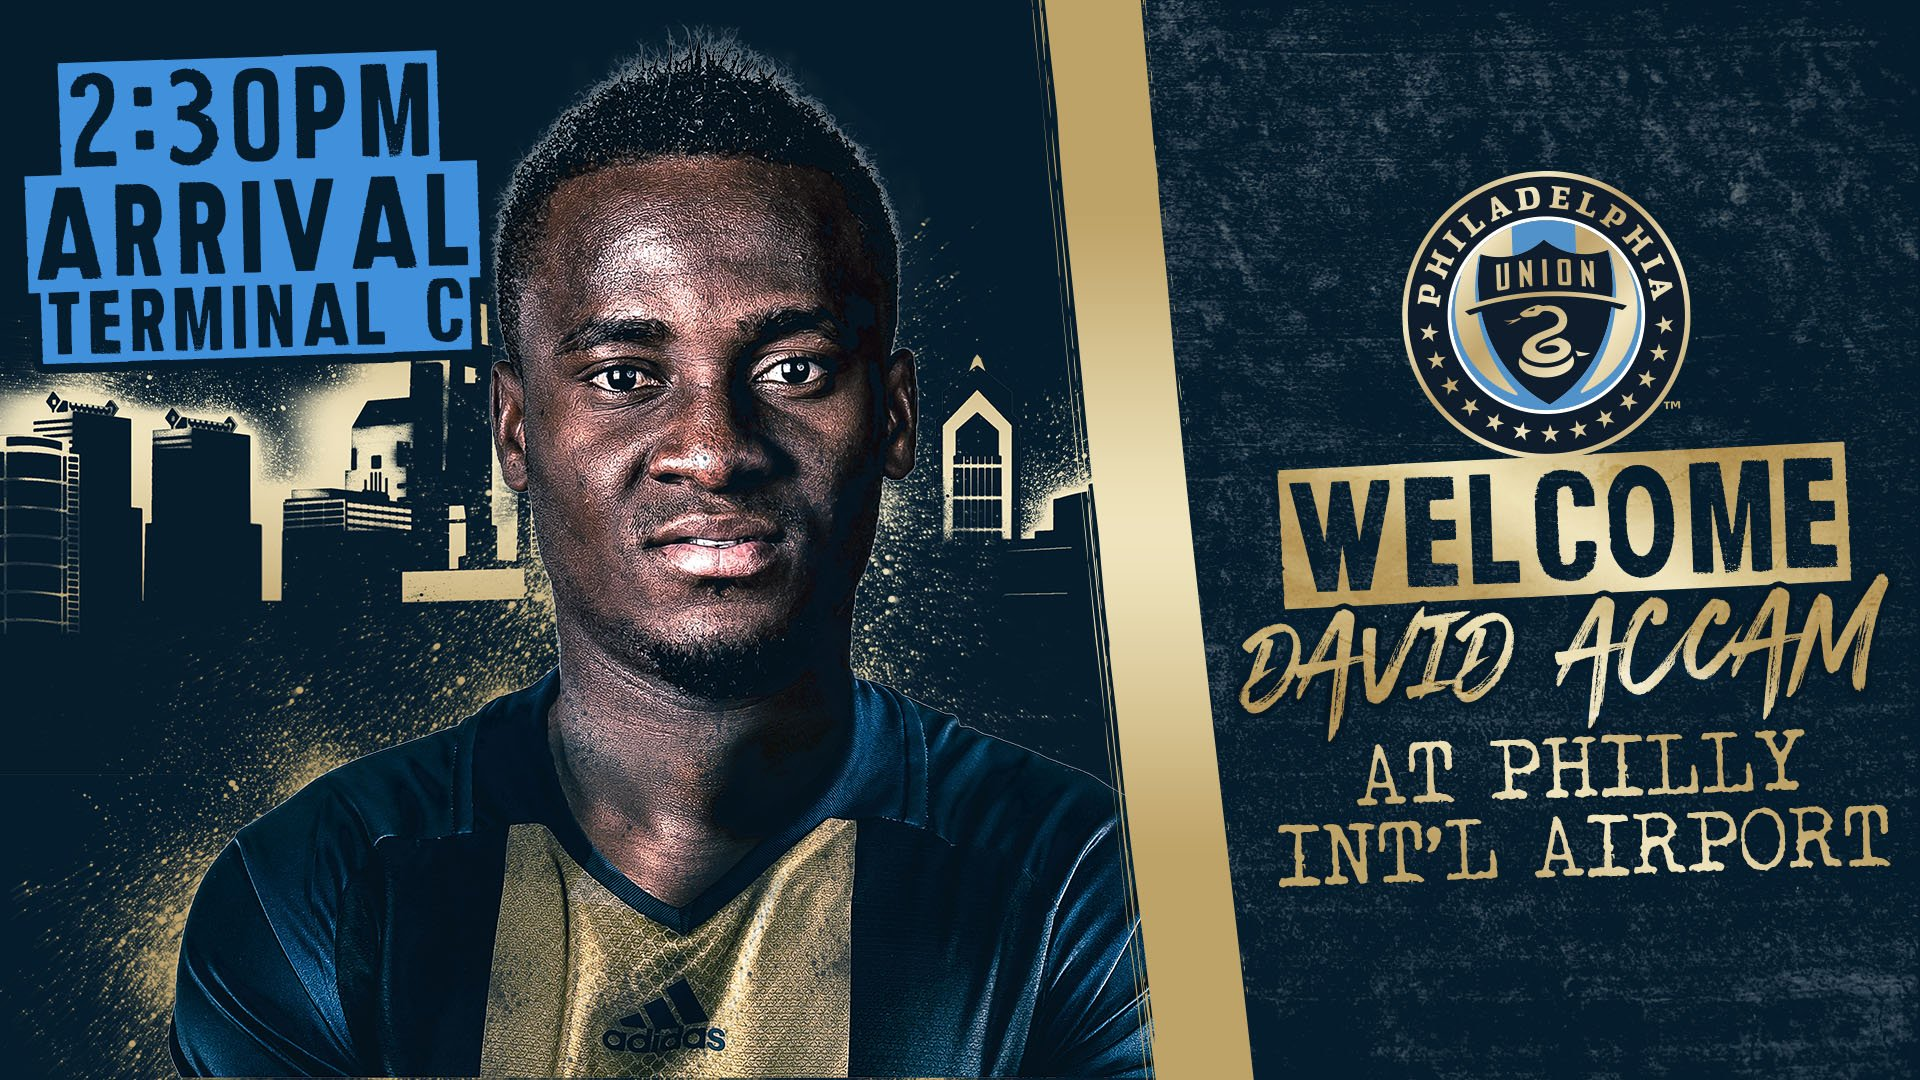 See you at 2:30PM @iamdavidaccam!   More information about David's arrival: https://t.co/QZAOrozLDu  #DOOP https://t.co/s1QIMxWpSL